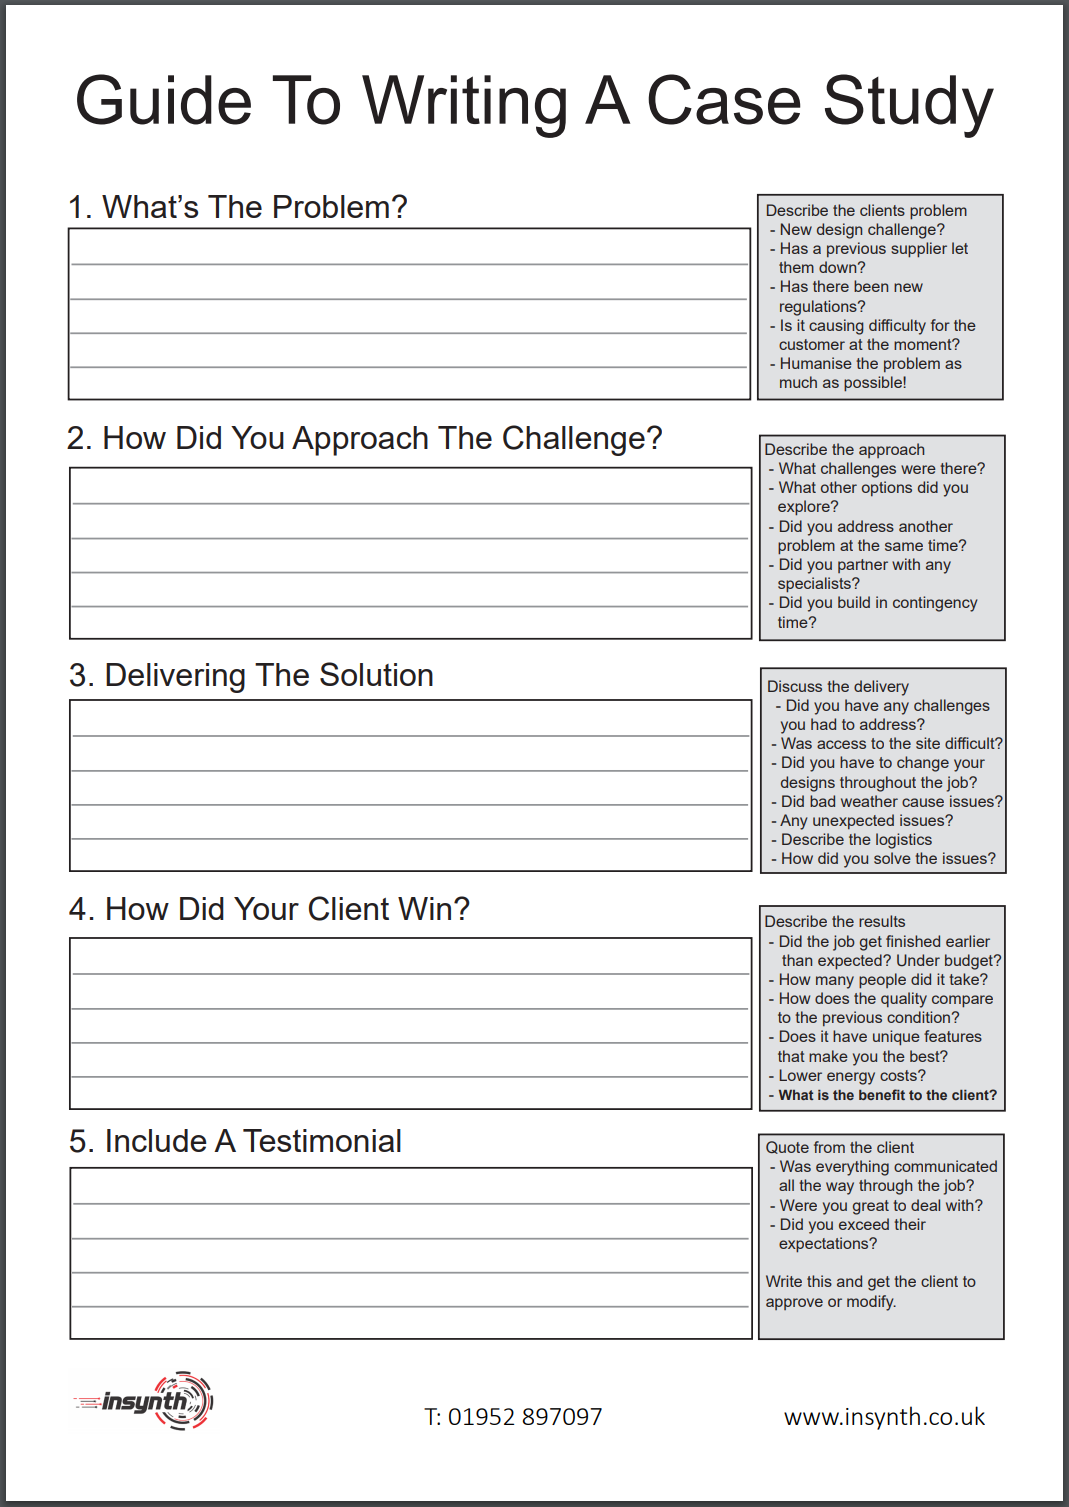 Guide To Writing A Case Study Cheat Sheet